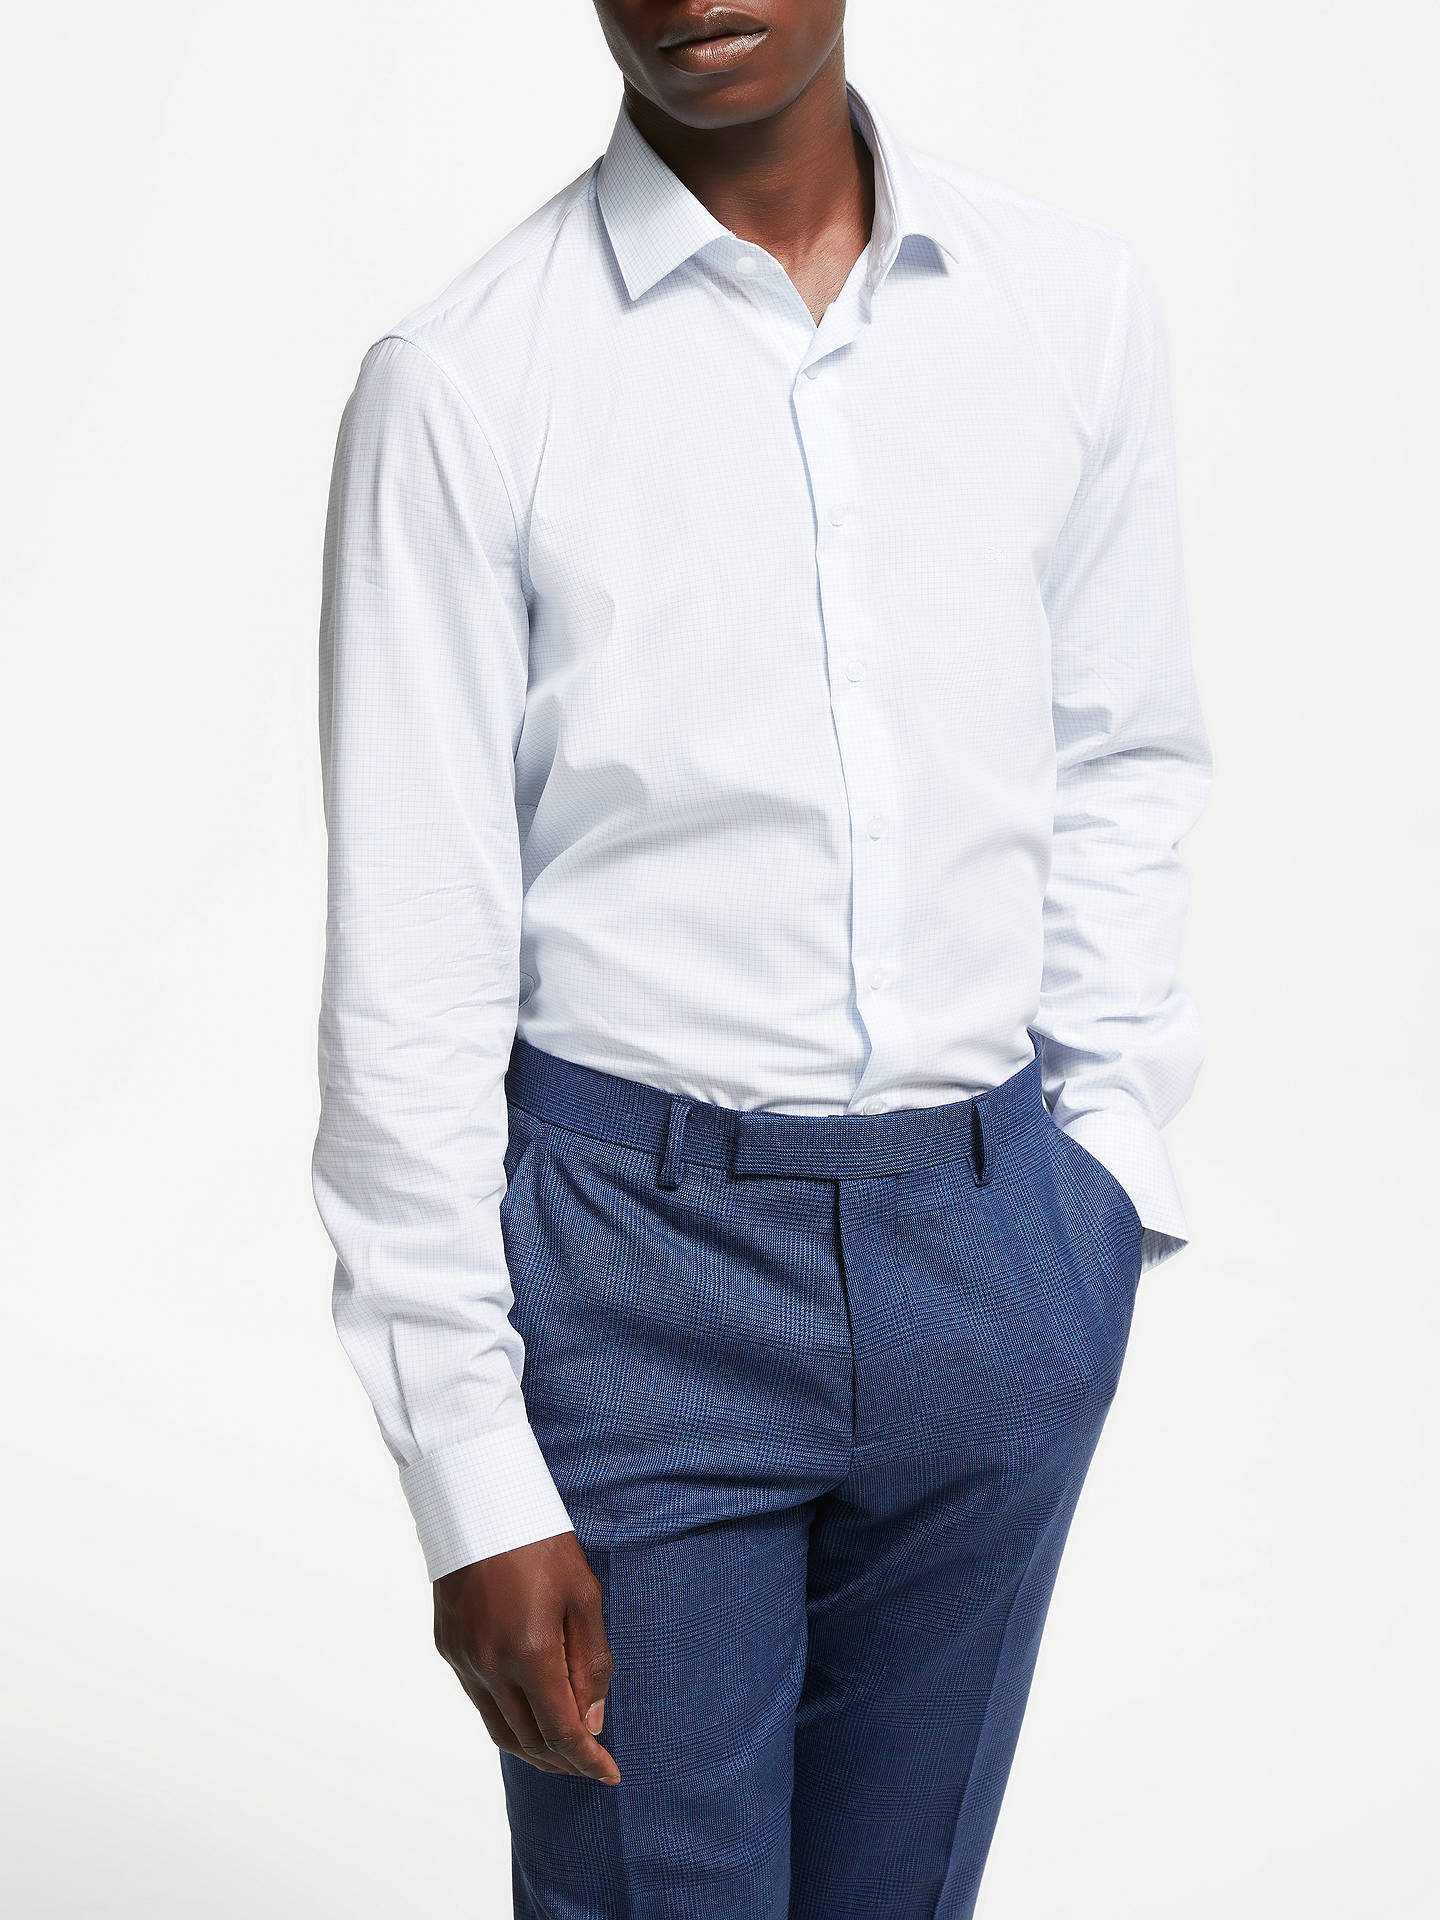 BuyCalvin Klein Check Slim Fit Shirt, White/Blue, 17 Online at johnlewis.com